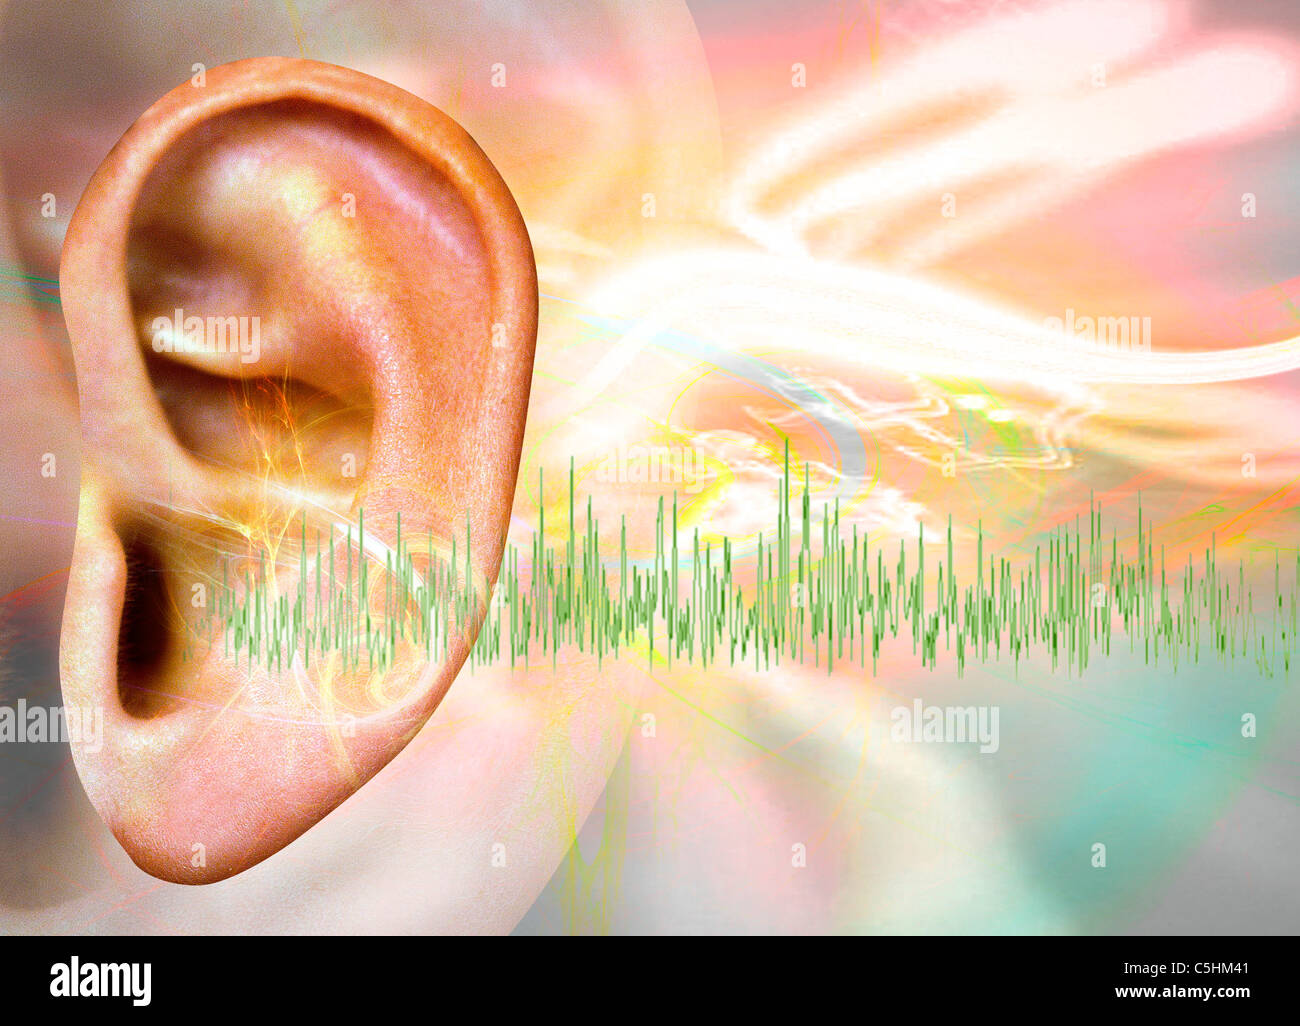 Anatomy Ear Human Outer Ear Medicine Drawing Sciences Stock Photos ...